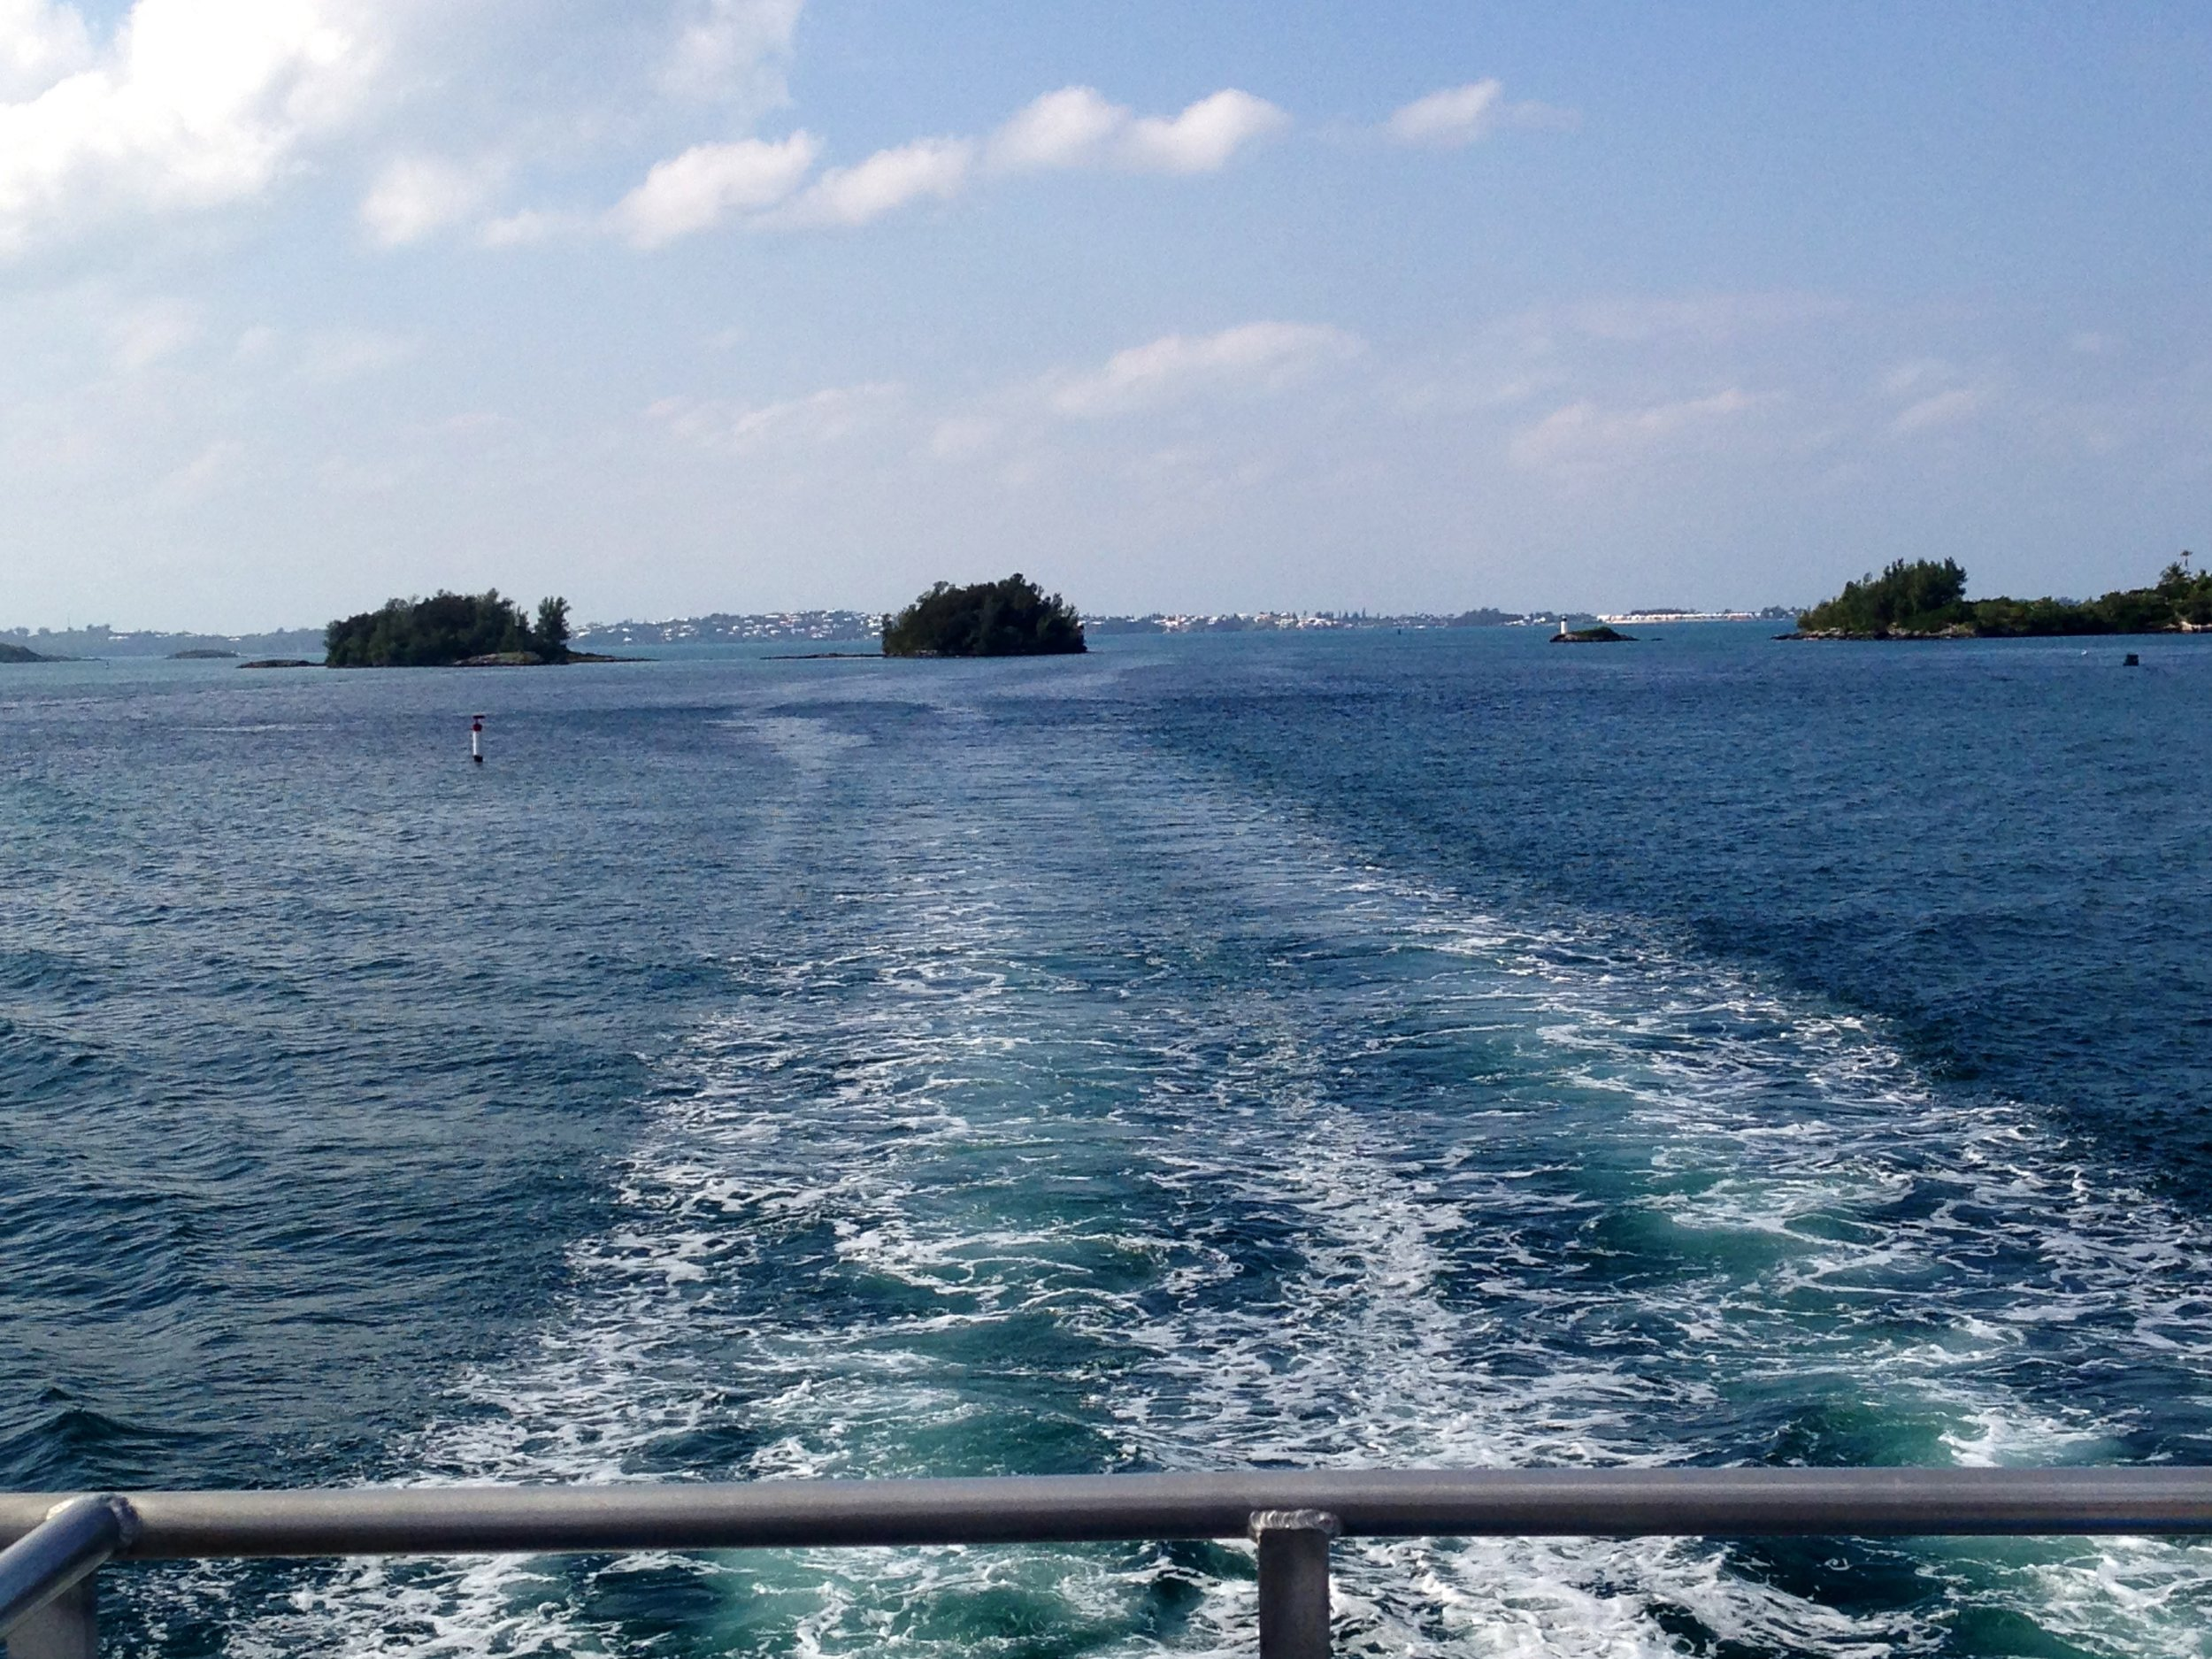 OUR VIEW FROM THE FERRY IN BERMUDA AS WE SAILED INTO HAMILTON EACH WEEK. USUALLY ON A DAY OFF.